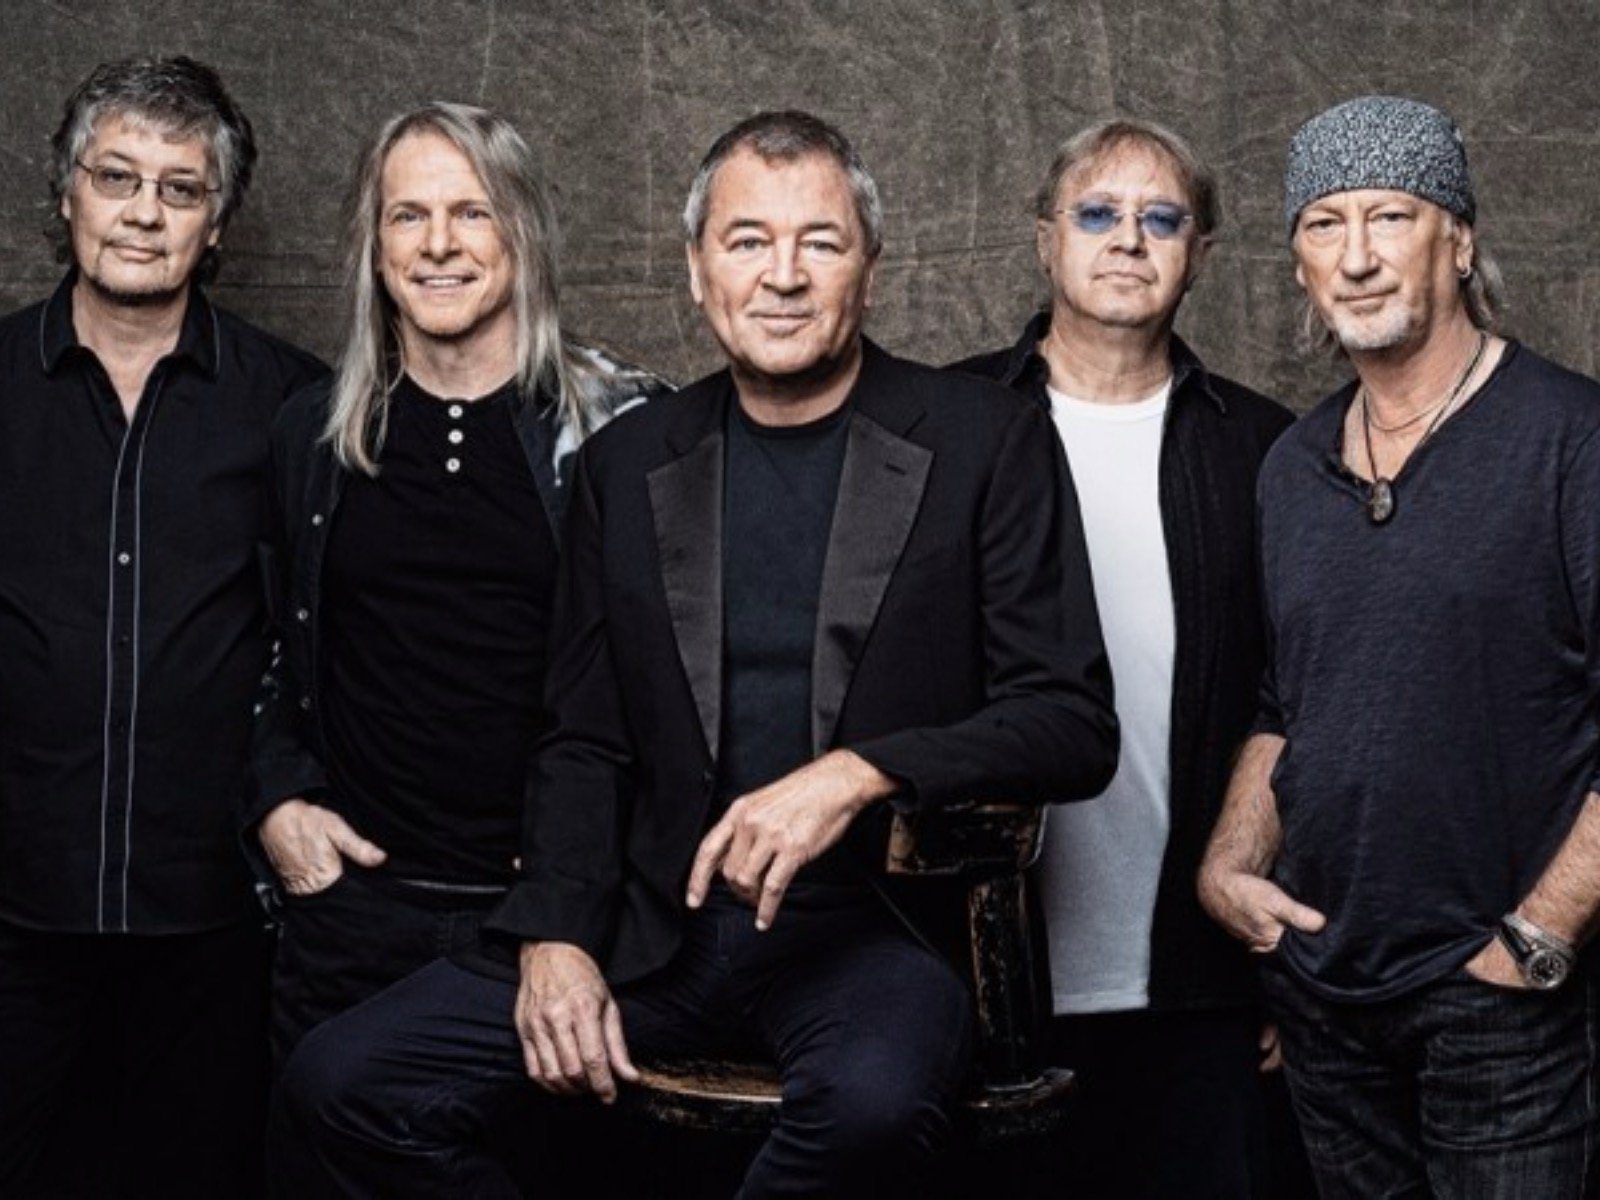 Deep Purple's Roger Glover talks the origins of 'Smoke on the Water' and more